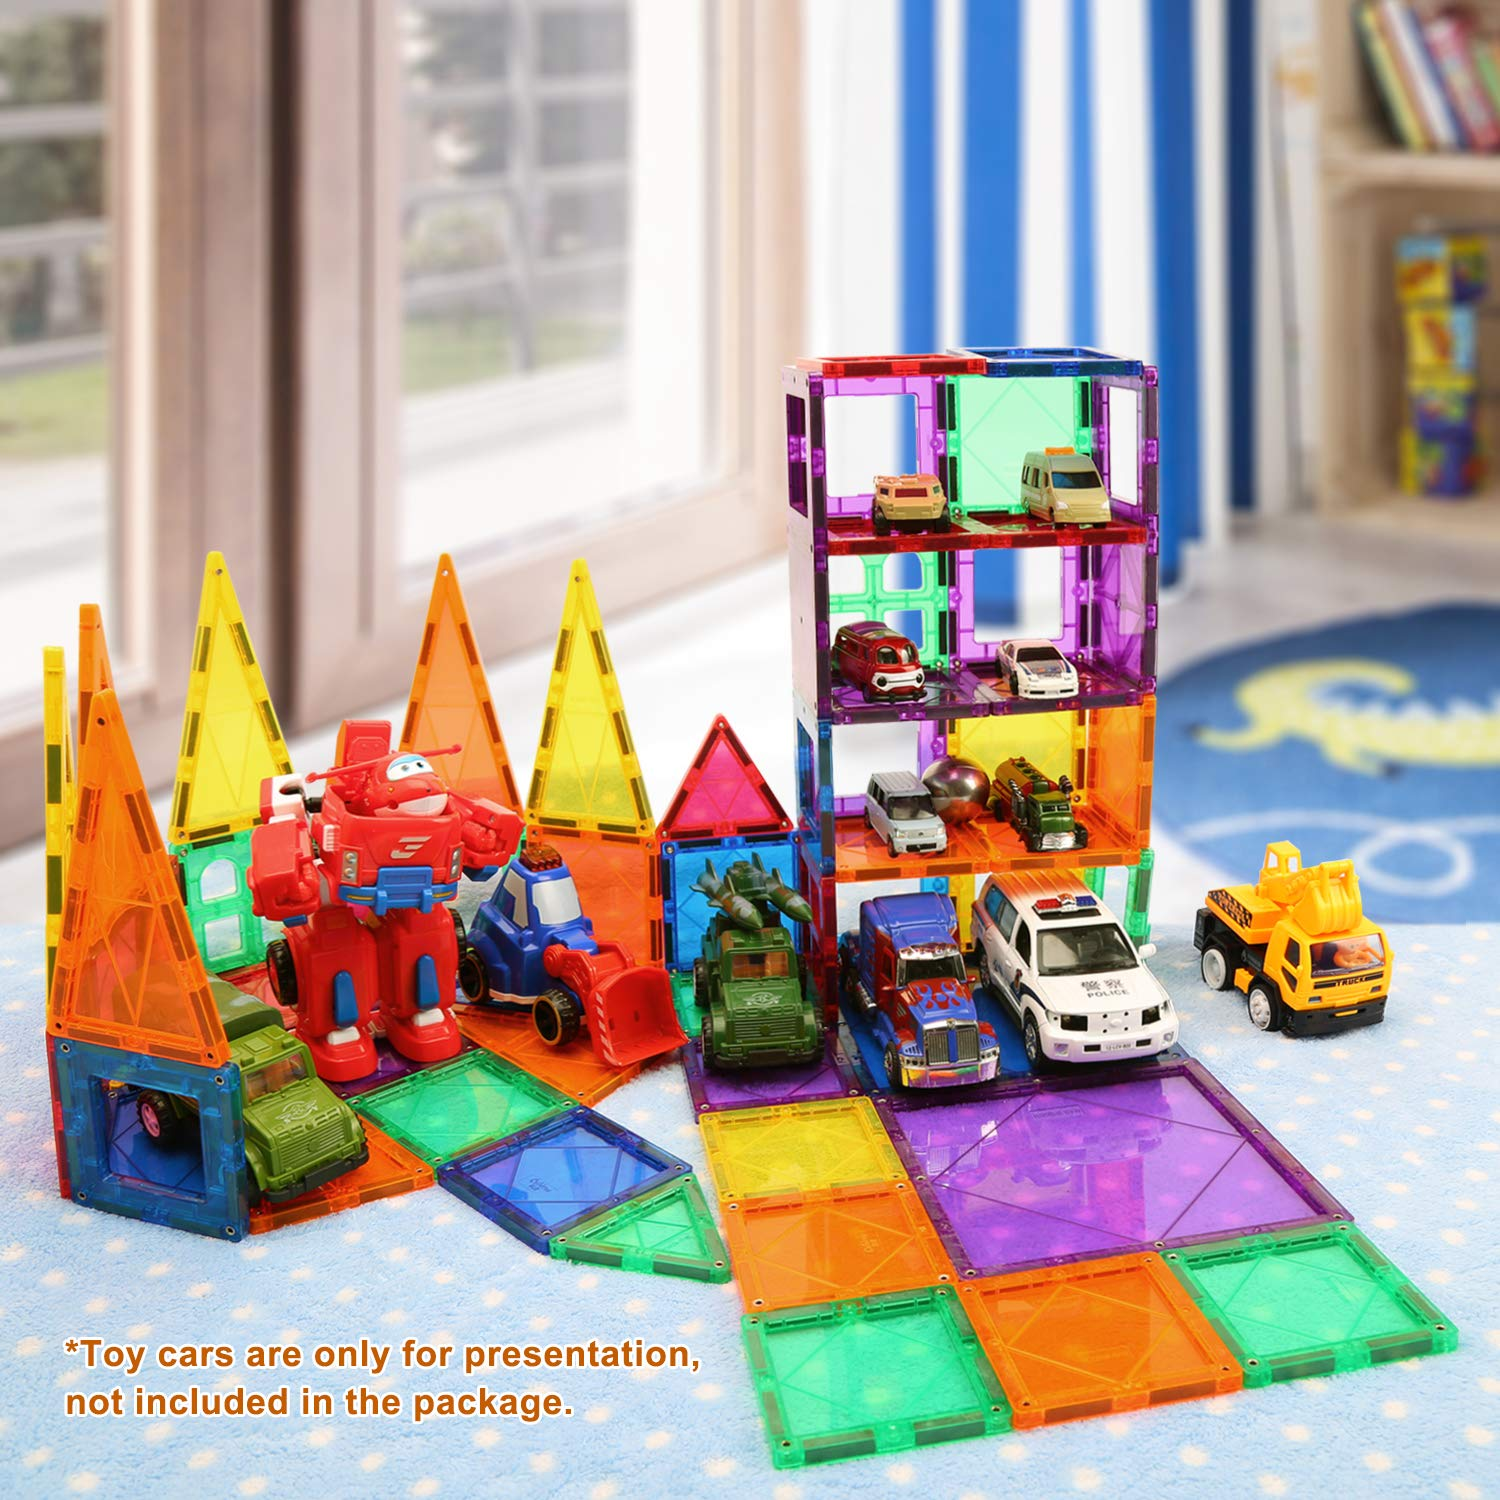 Children Hub 100pcs Magnetic Tiles Set - Educational 3D Magnet Building Blocks - Building Construction Toys for Kids - Upgraded Version with Strong Magnets - Creativity, Imagination, Inspiration by Children Hub (Image #1)